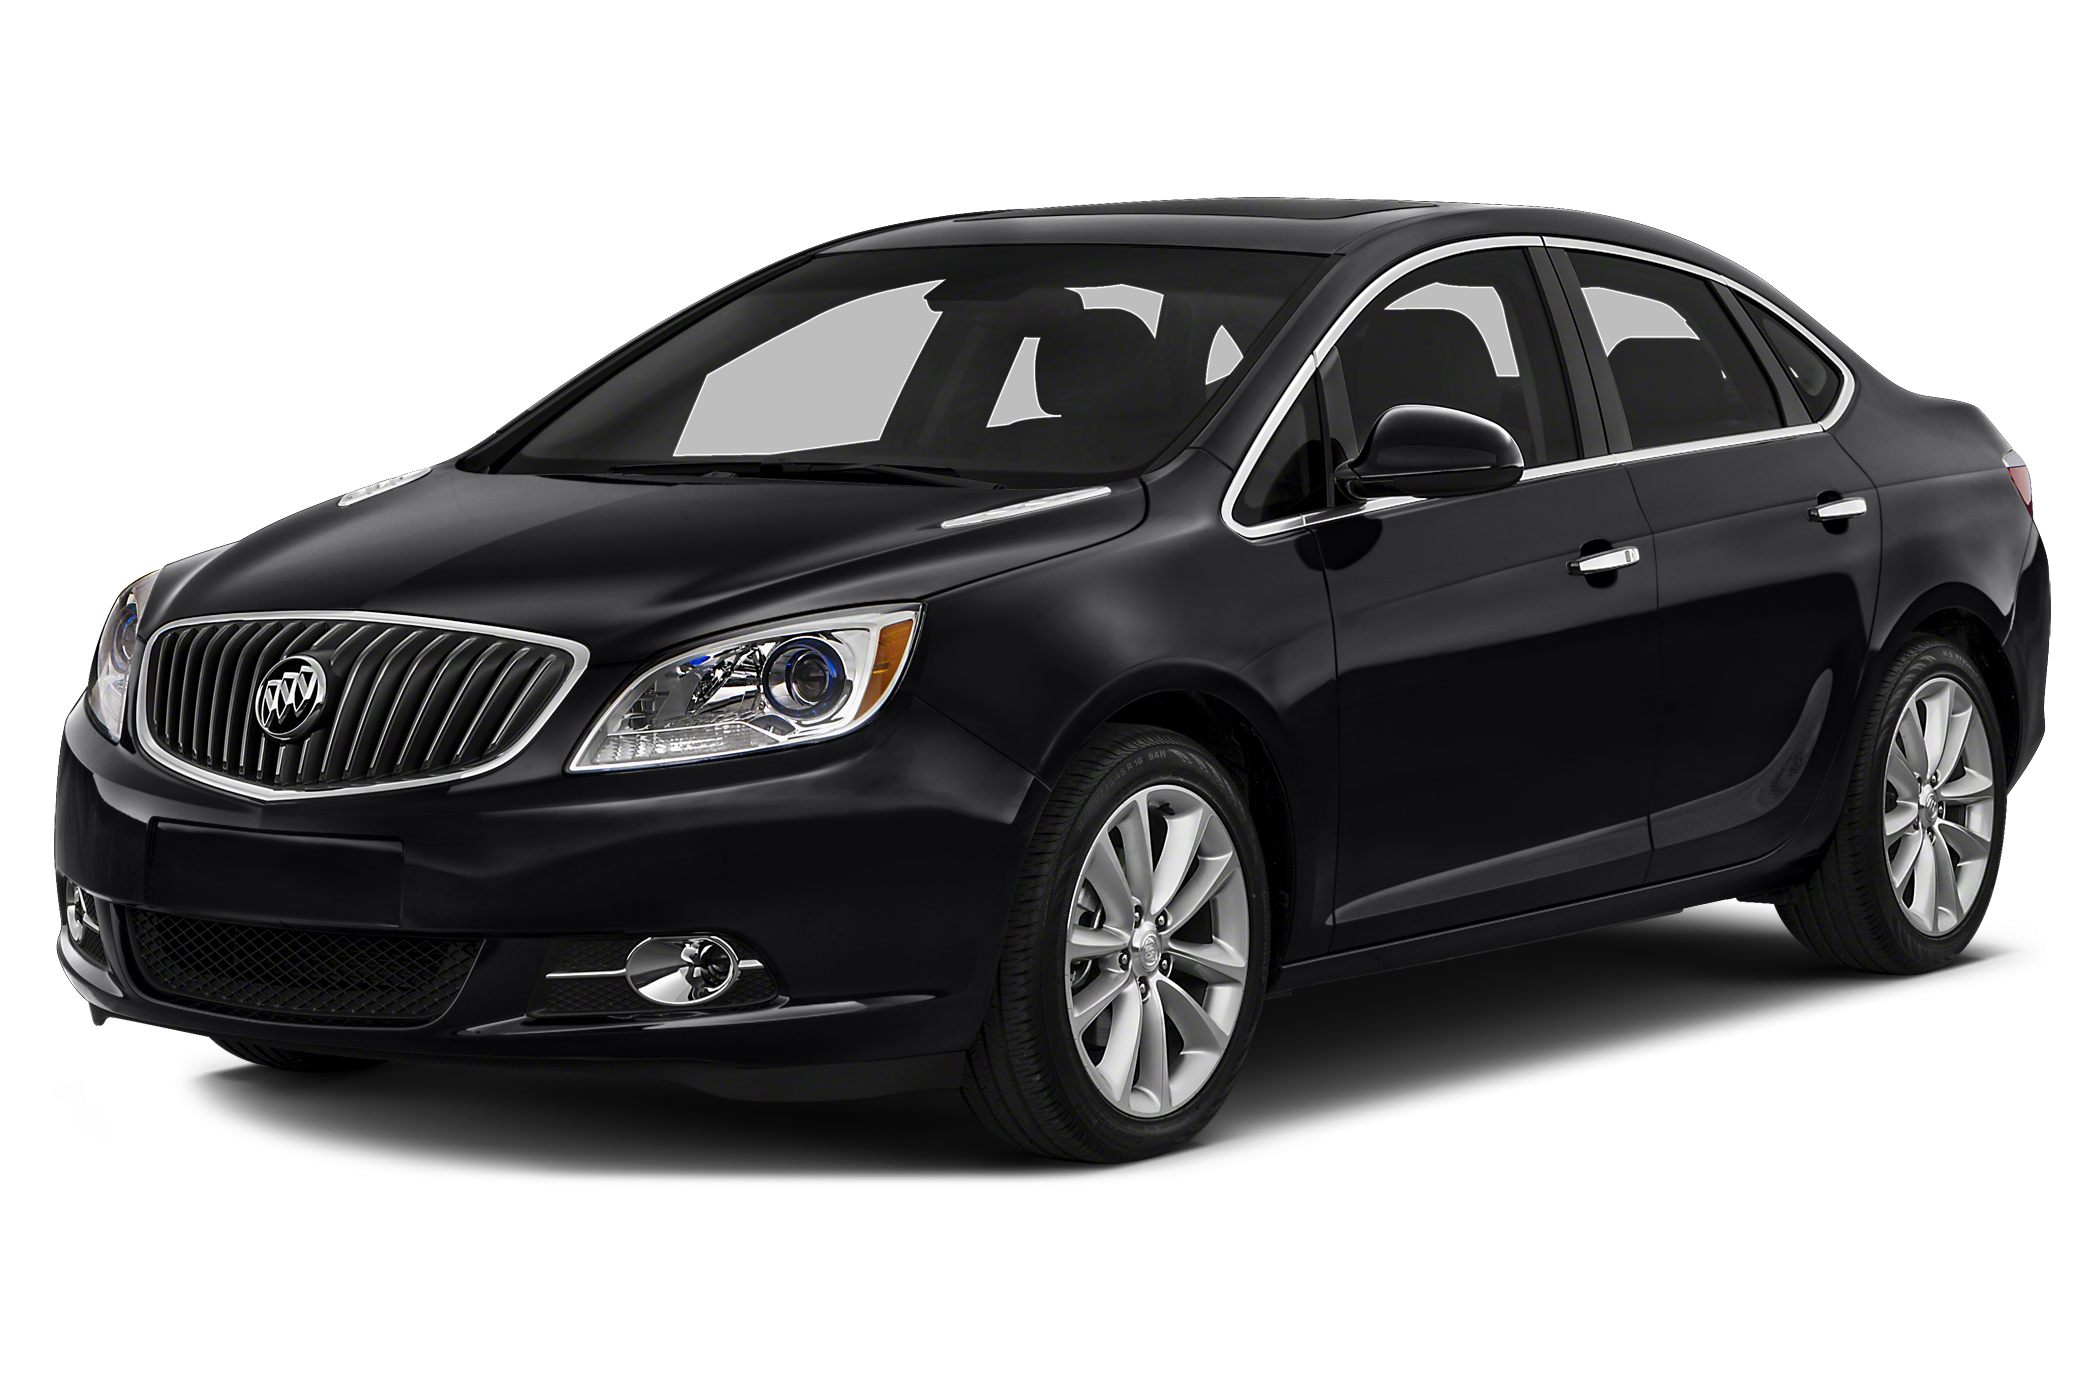 2014 Buick Verano Leather Group >> 2014 Buick Verano Convenience Group 4dr Sedan Pictures